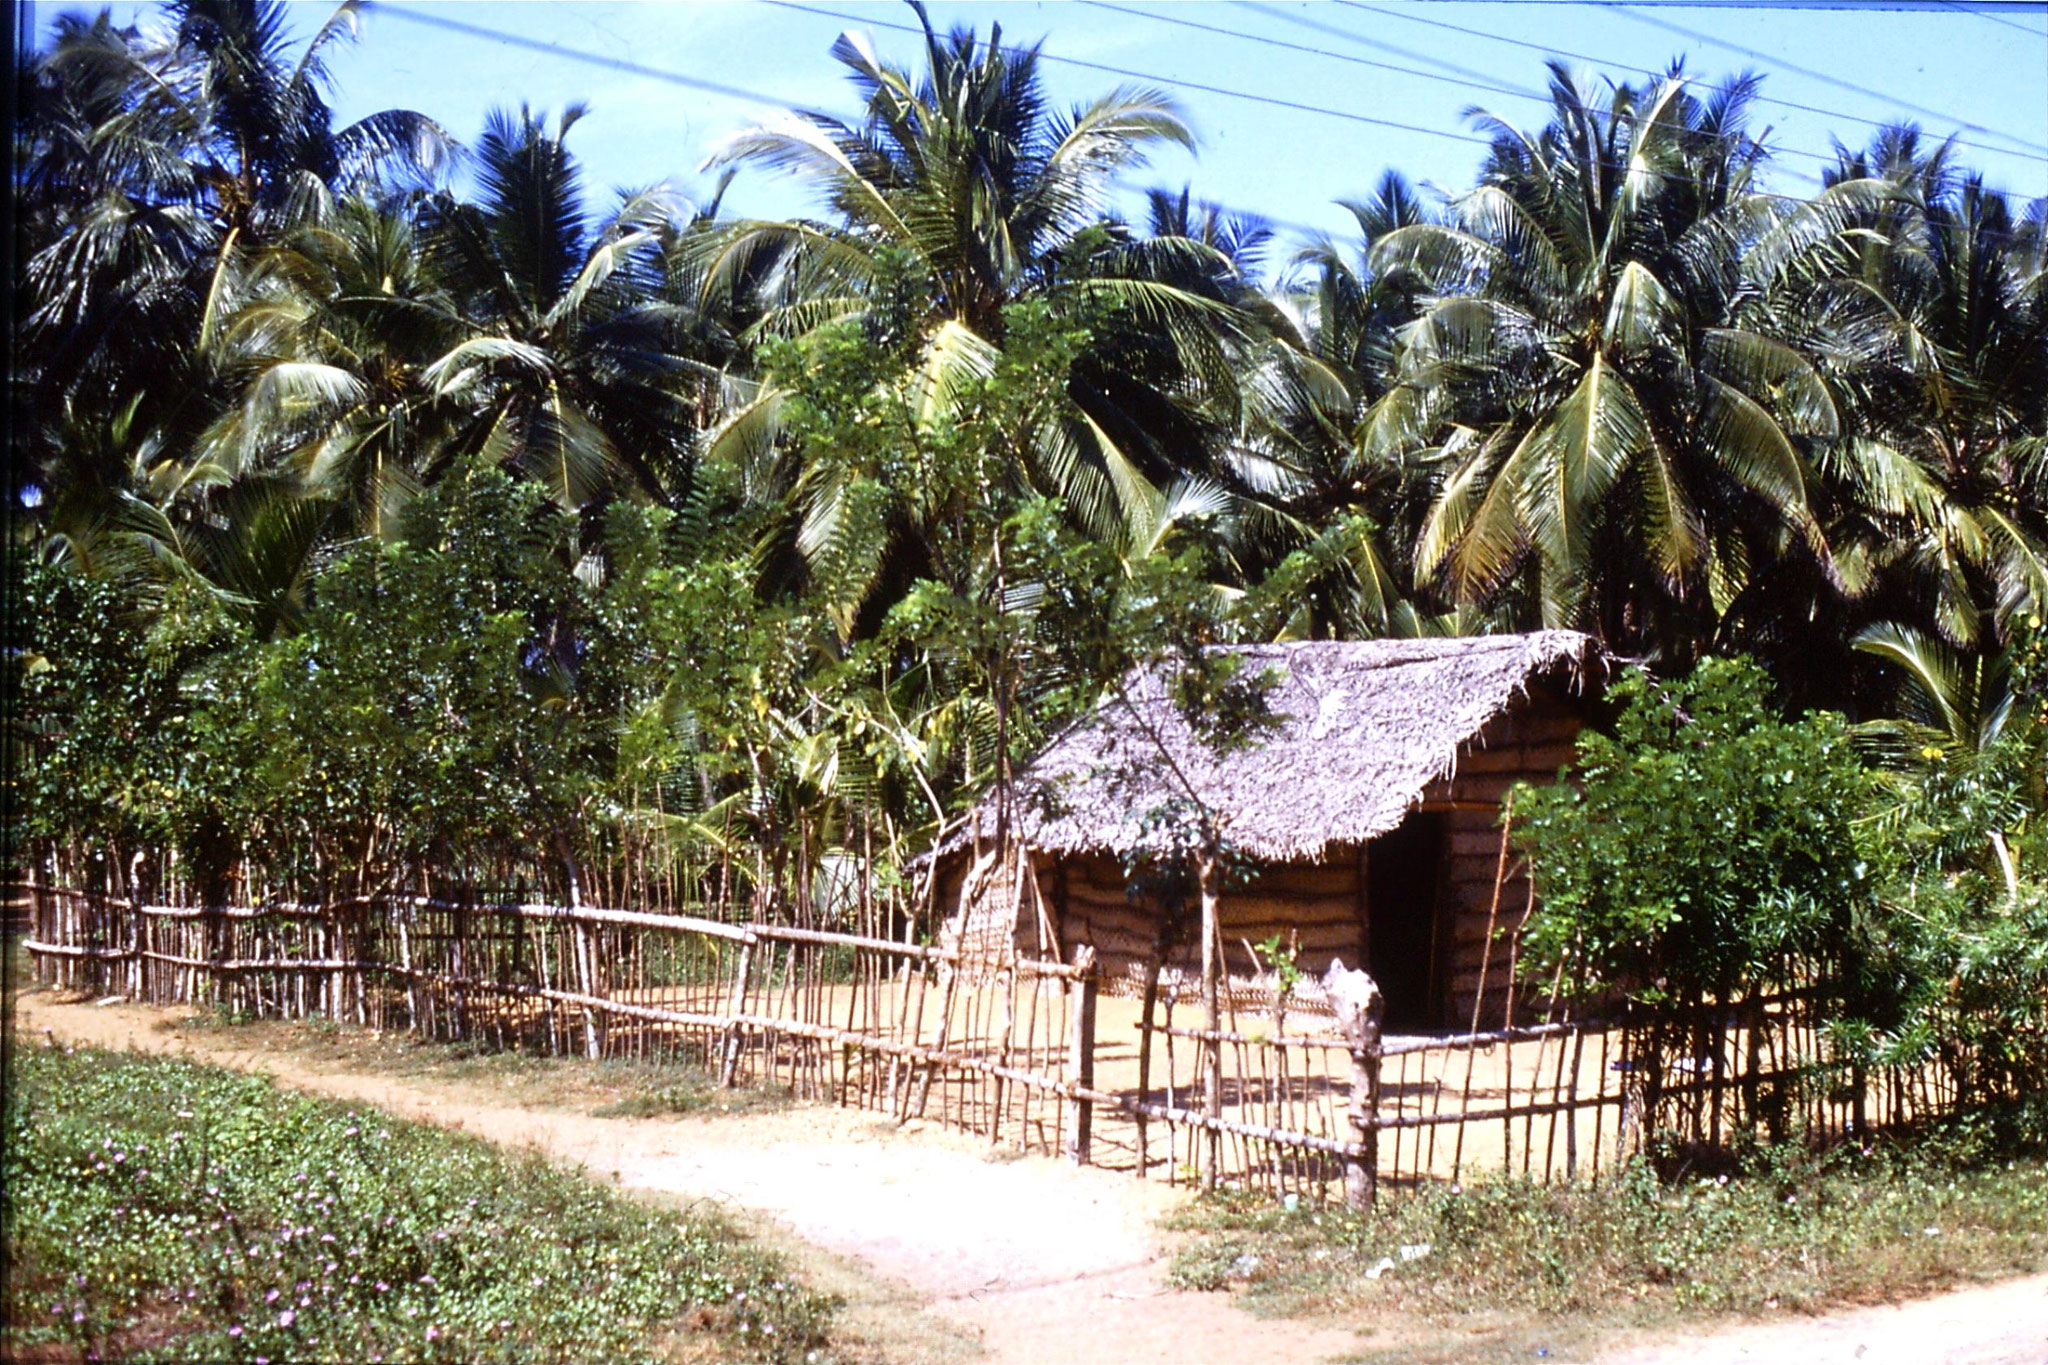 24/1/1990: 30: coconut branch house